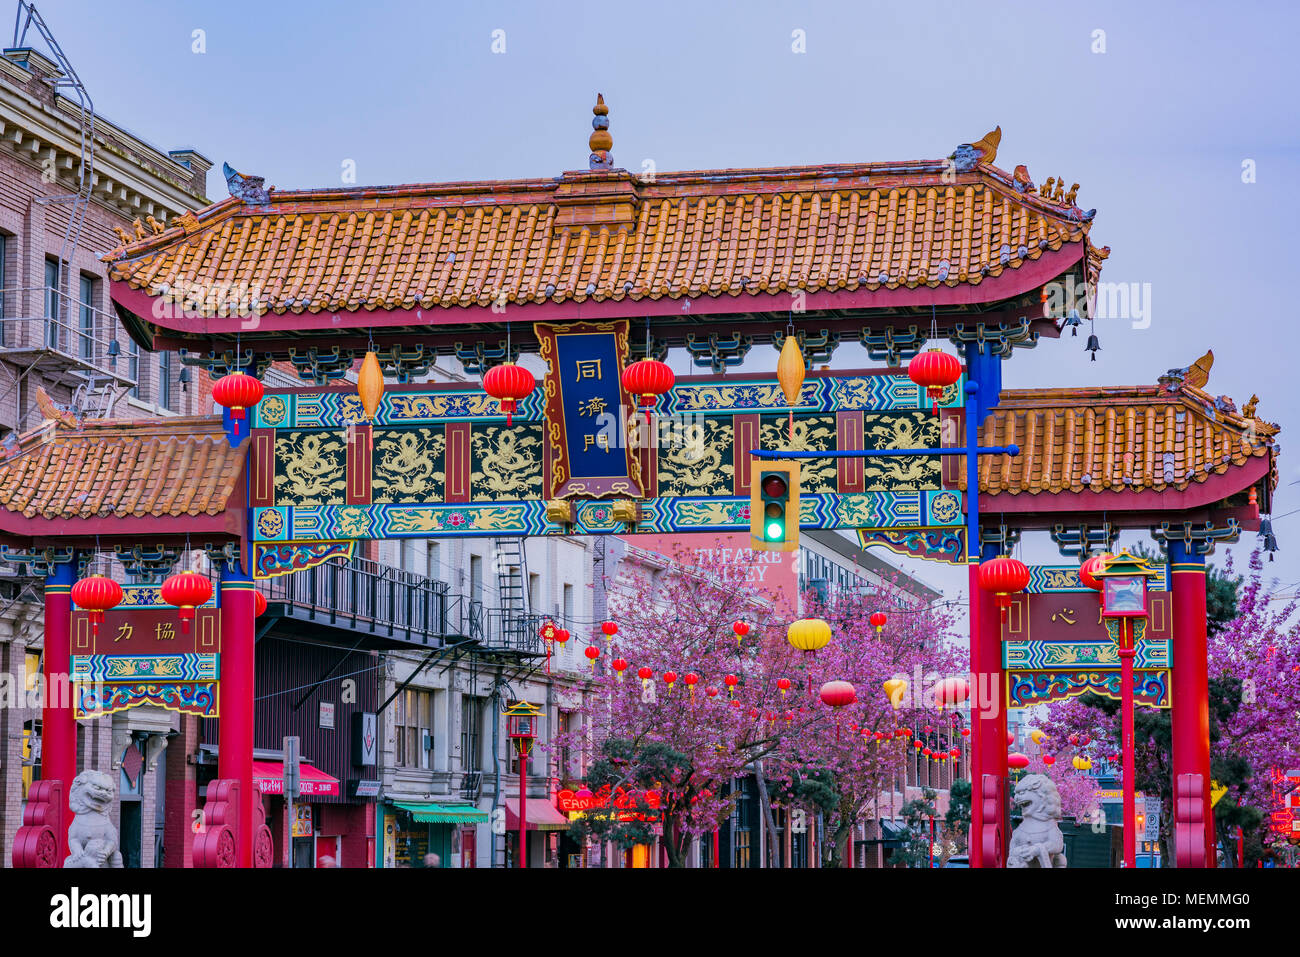 Gate of Harmonious Interest, Fisgard Street, Chinatown, Victoria, British Columbia, Canada. - Stock Image